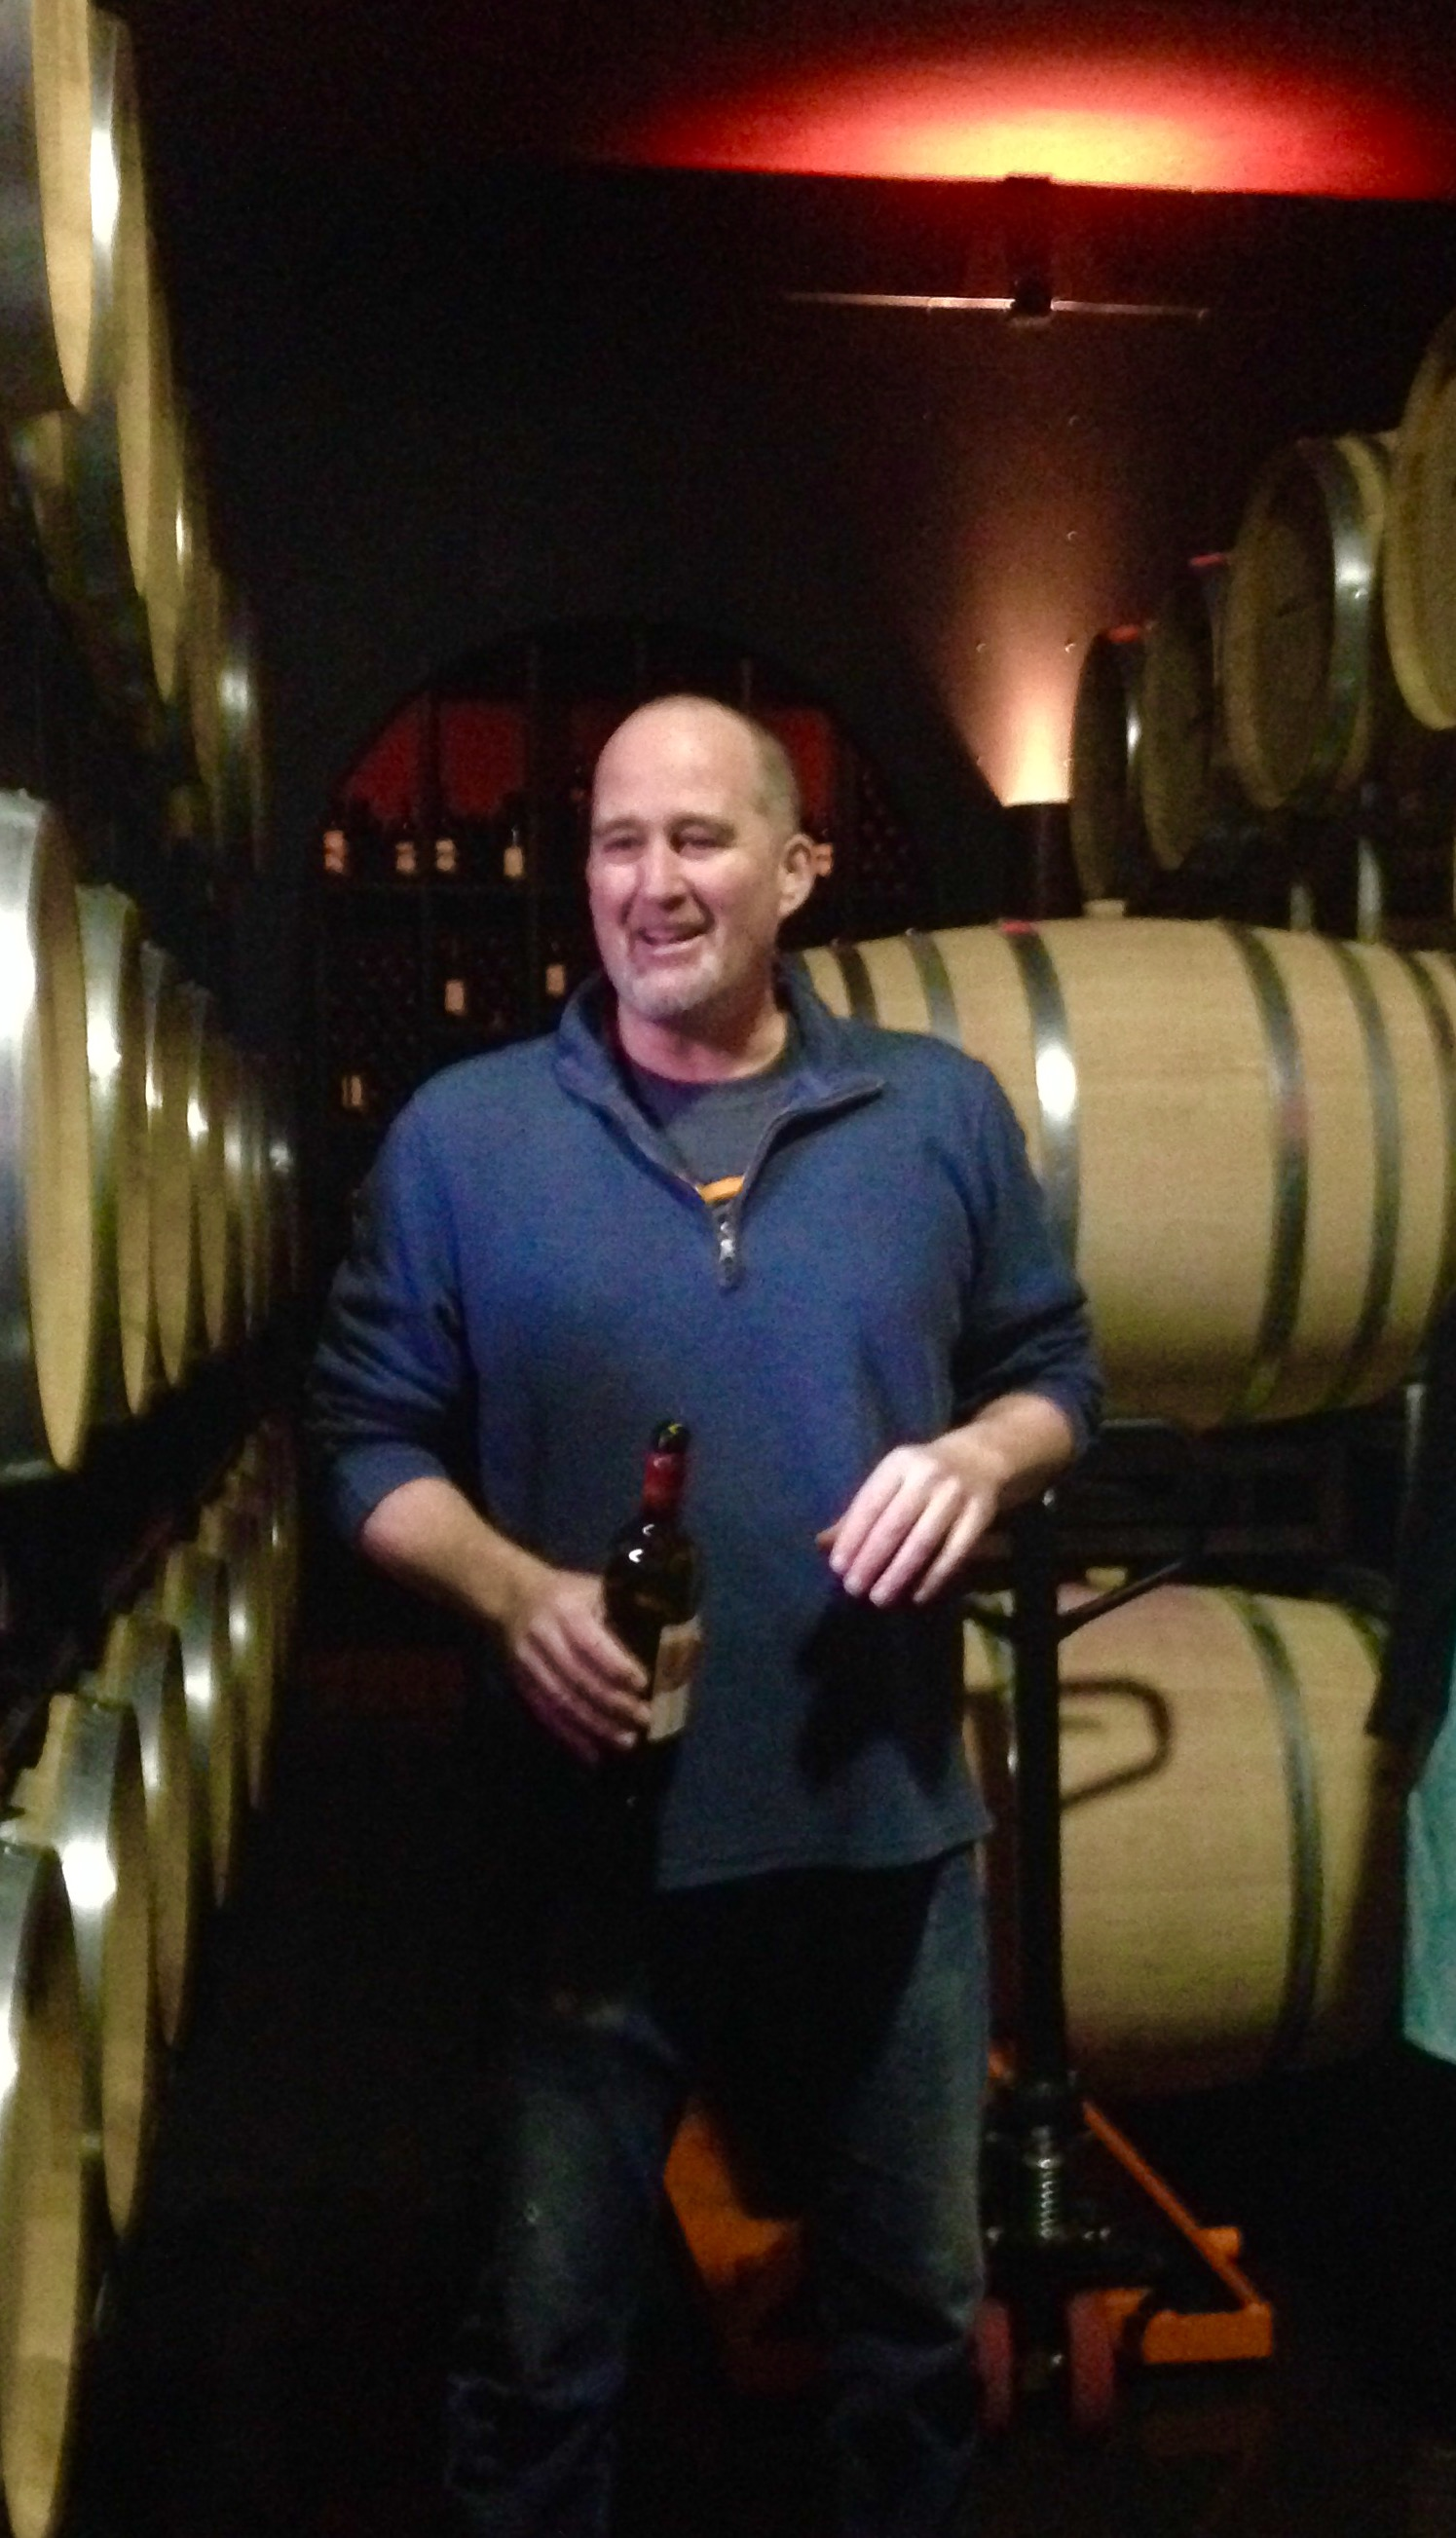 Owner/winemaker at JM Cellars, John Bigelow